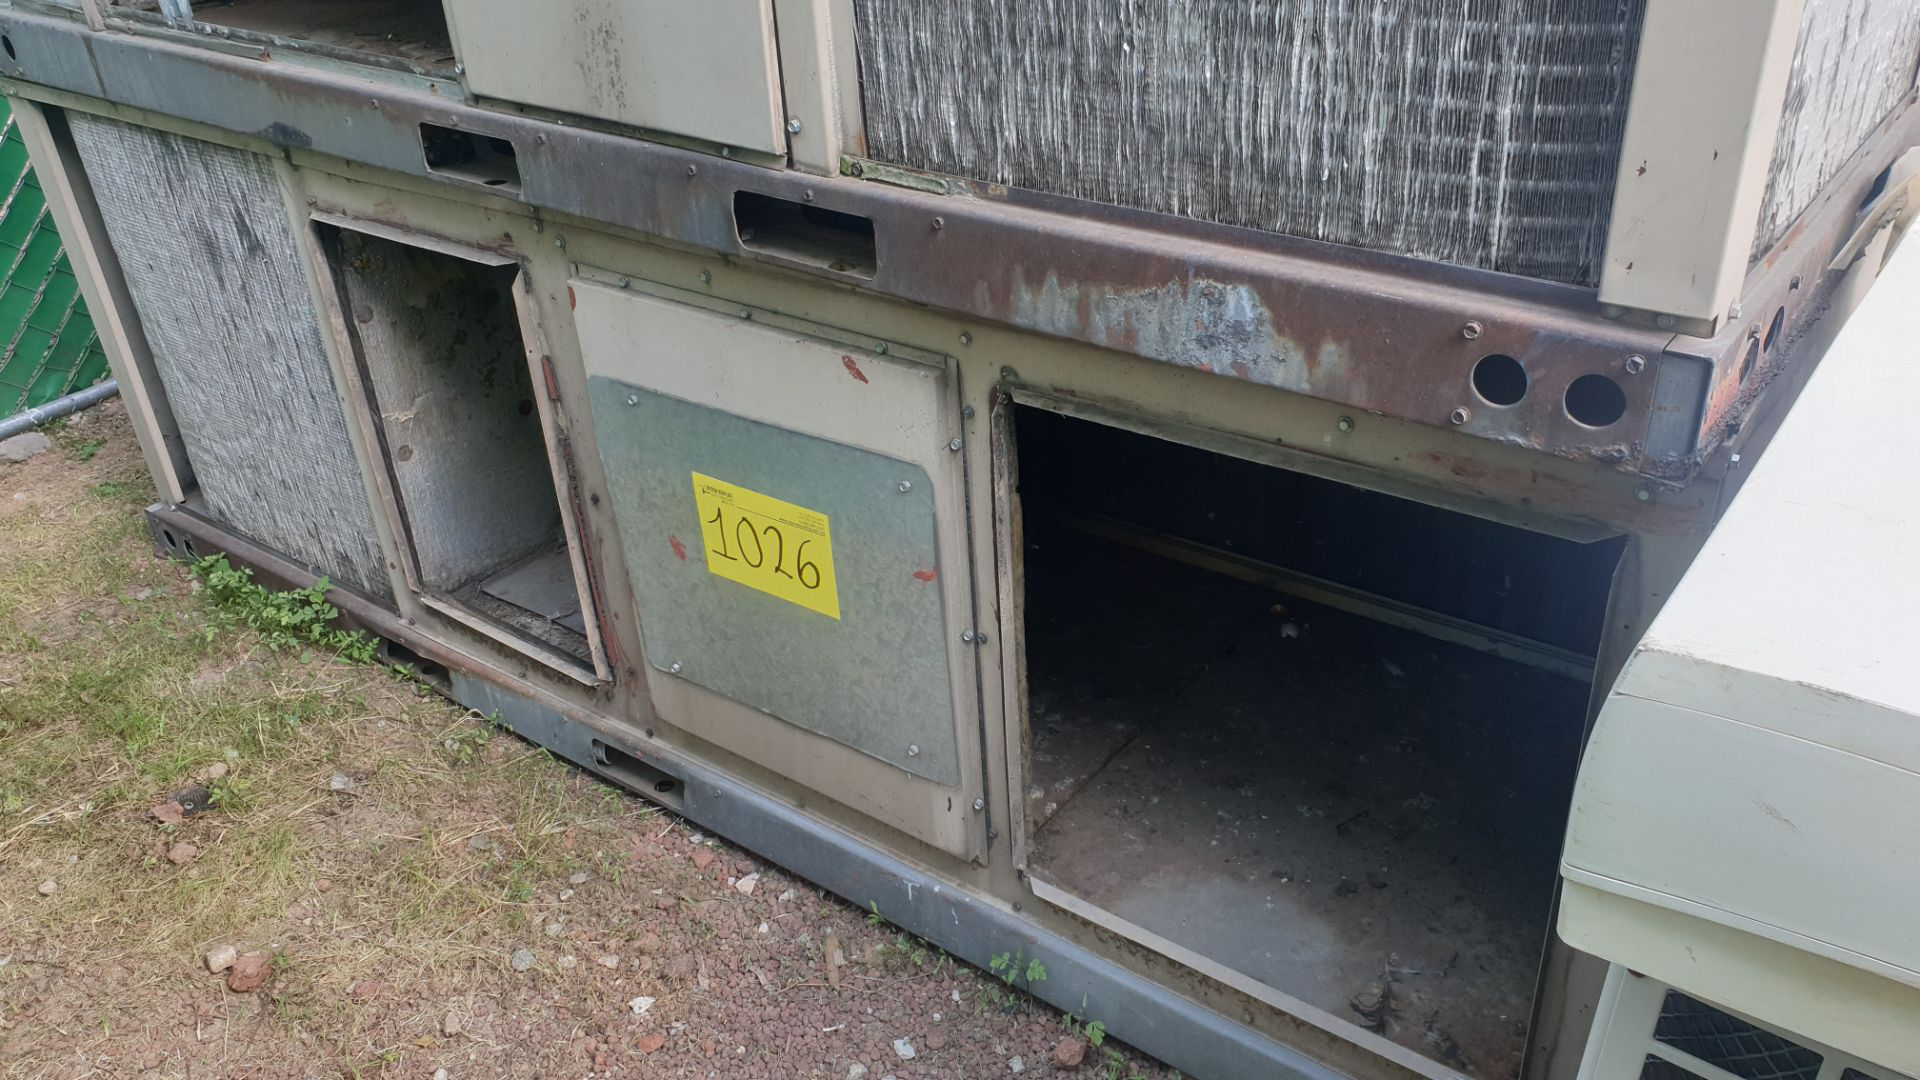 1 York Industrial Condensing unit, model D3CE090A46C n/s NFFM8698 - Image 3 of 6